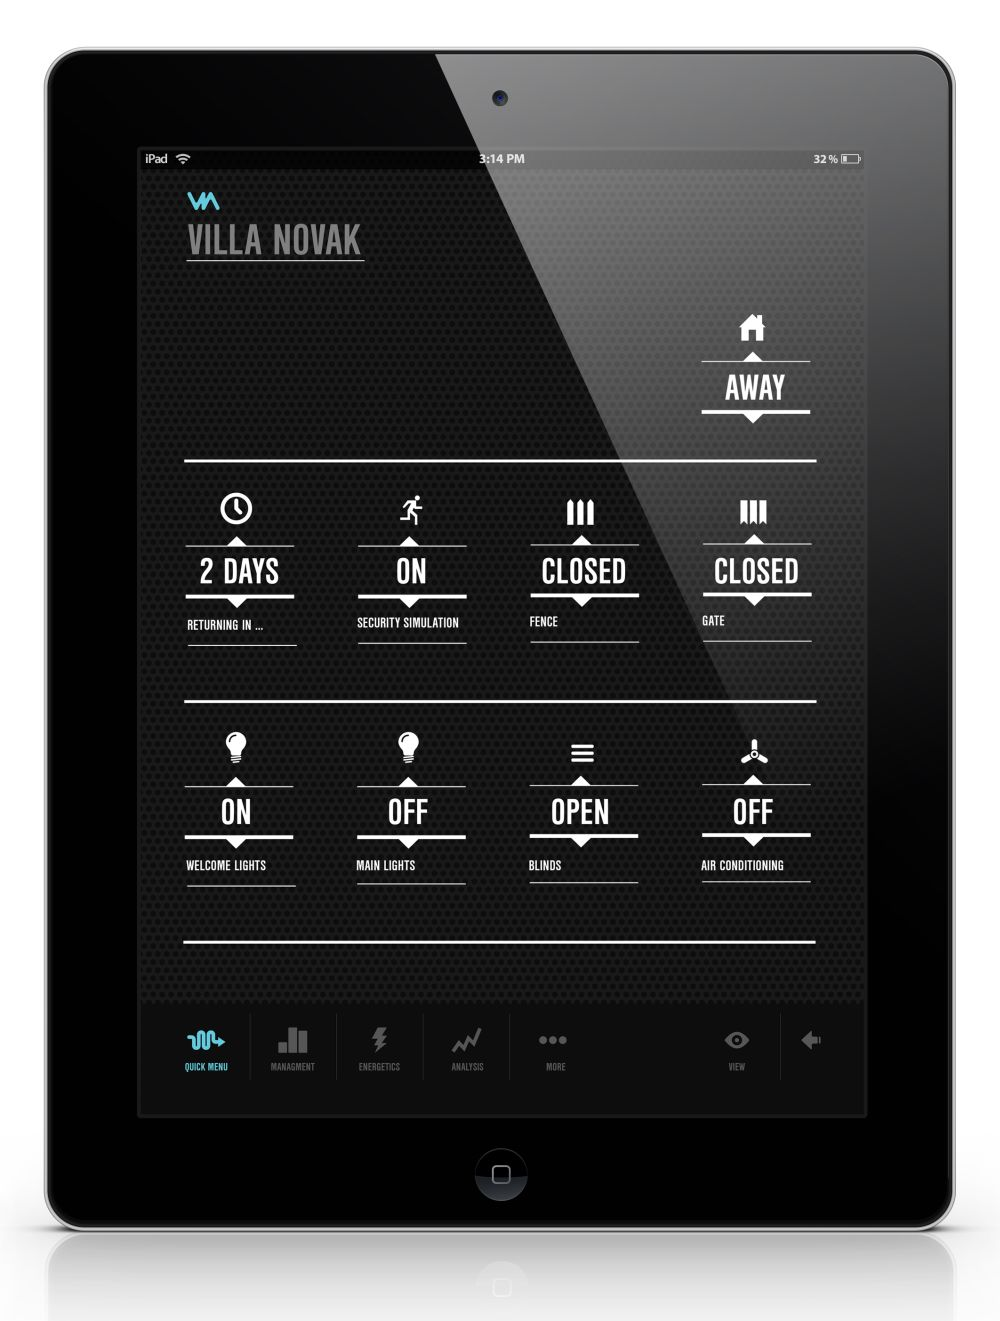 VIA menu display on iPad iPad App to Control Your Whole House: VIA!